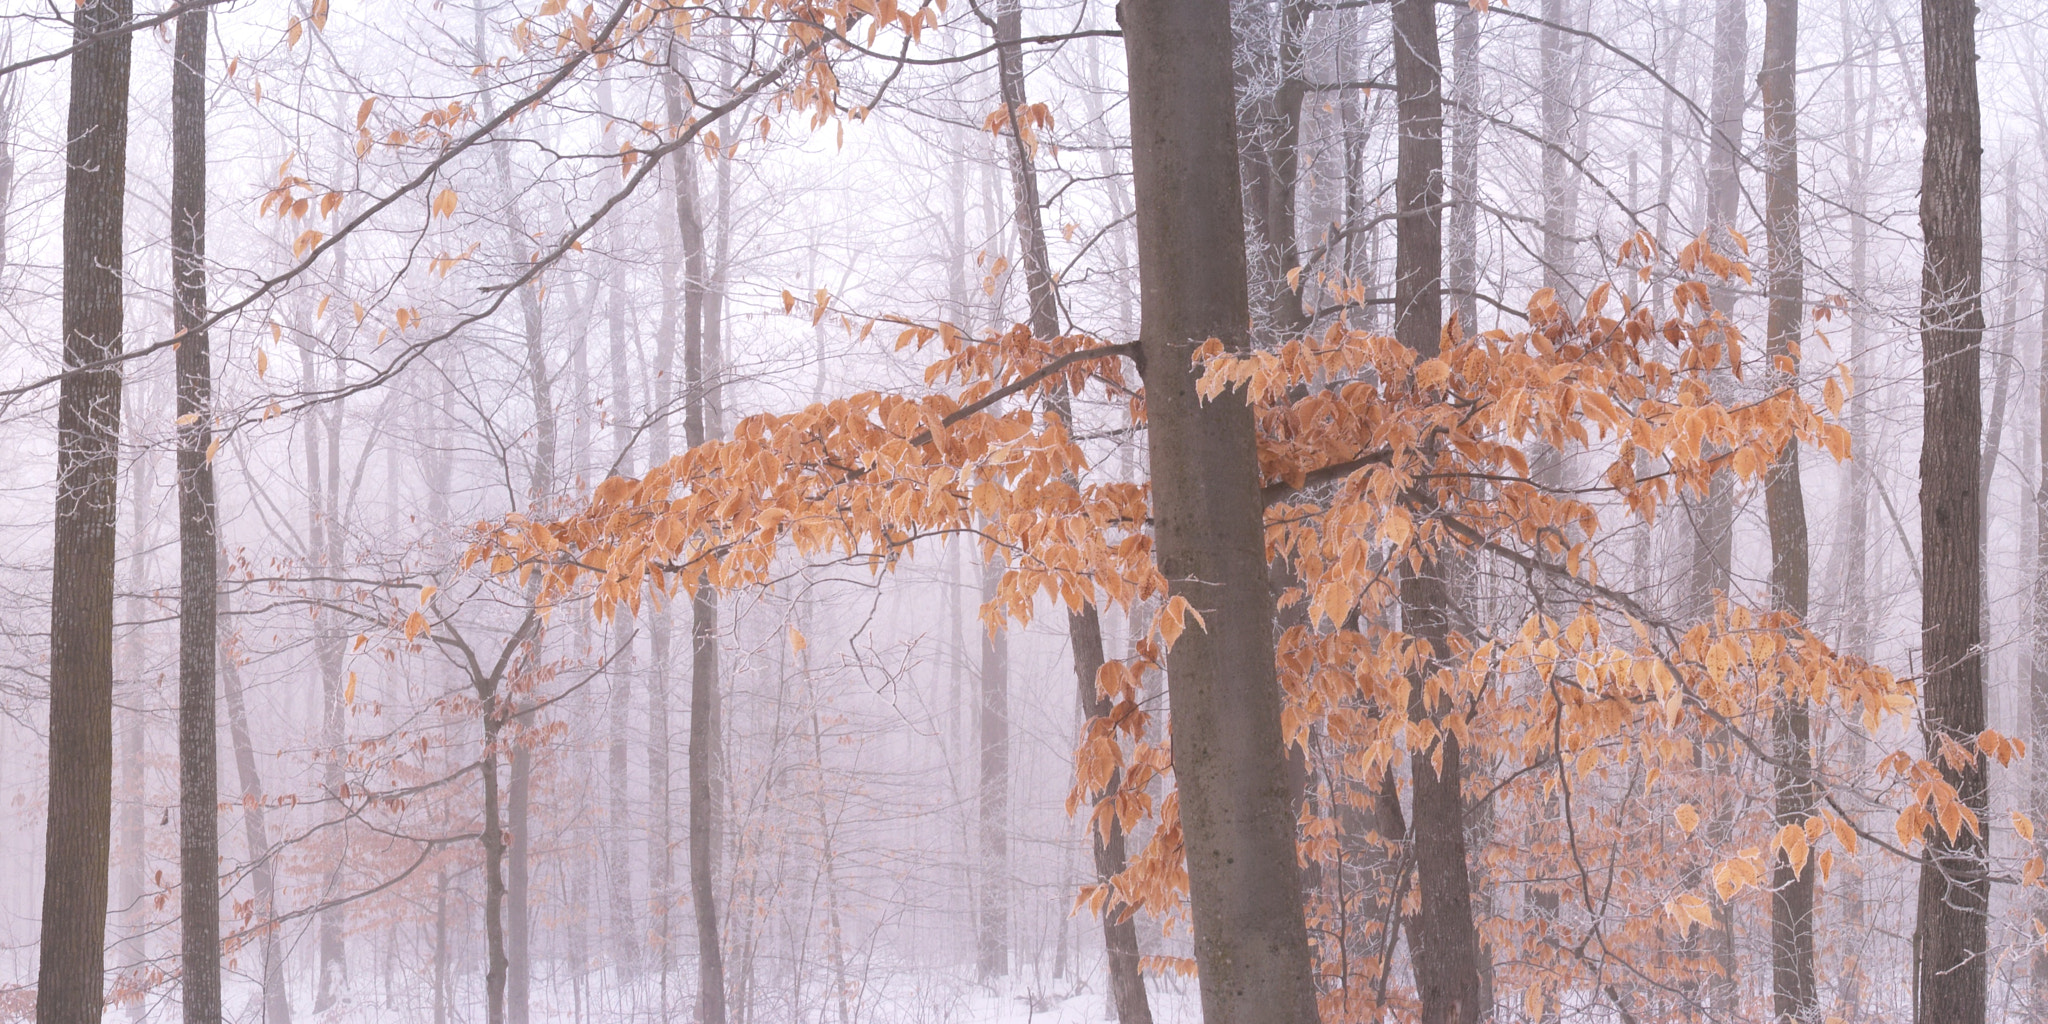 Photograph Winter Fog in the Forest by Robert Williams on 500px